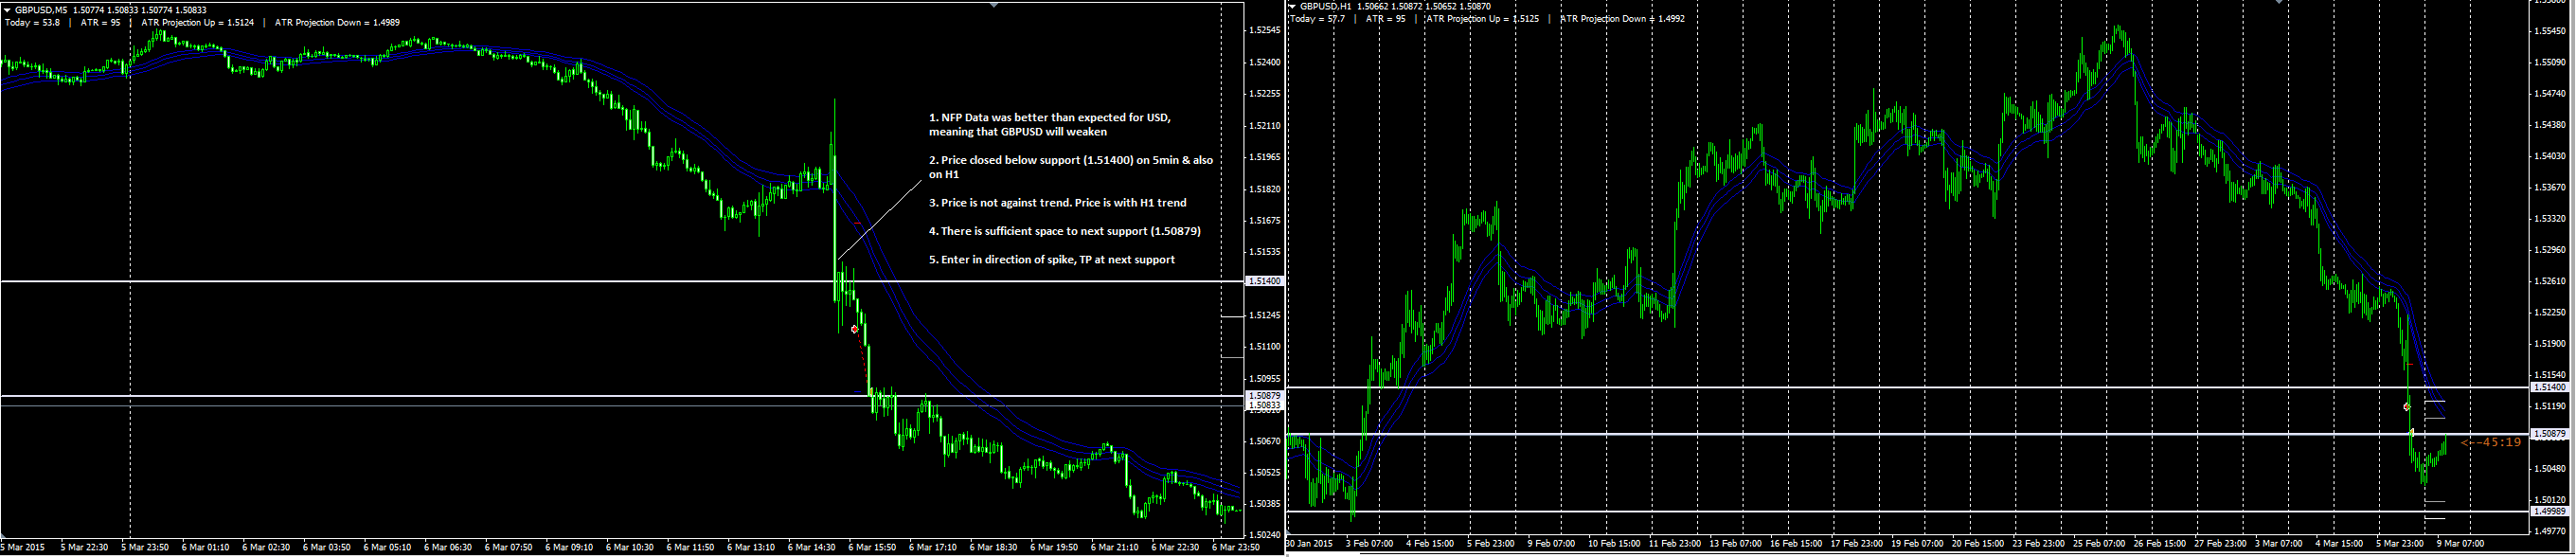 How to trade news in forex